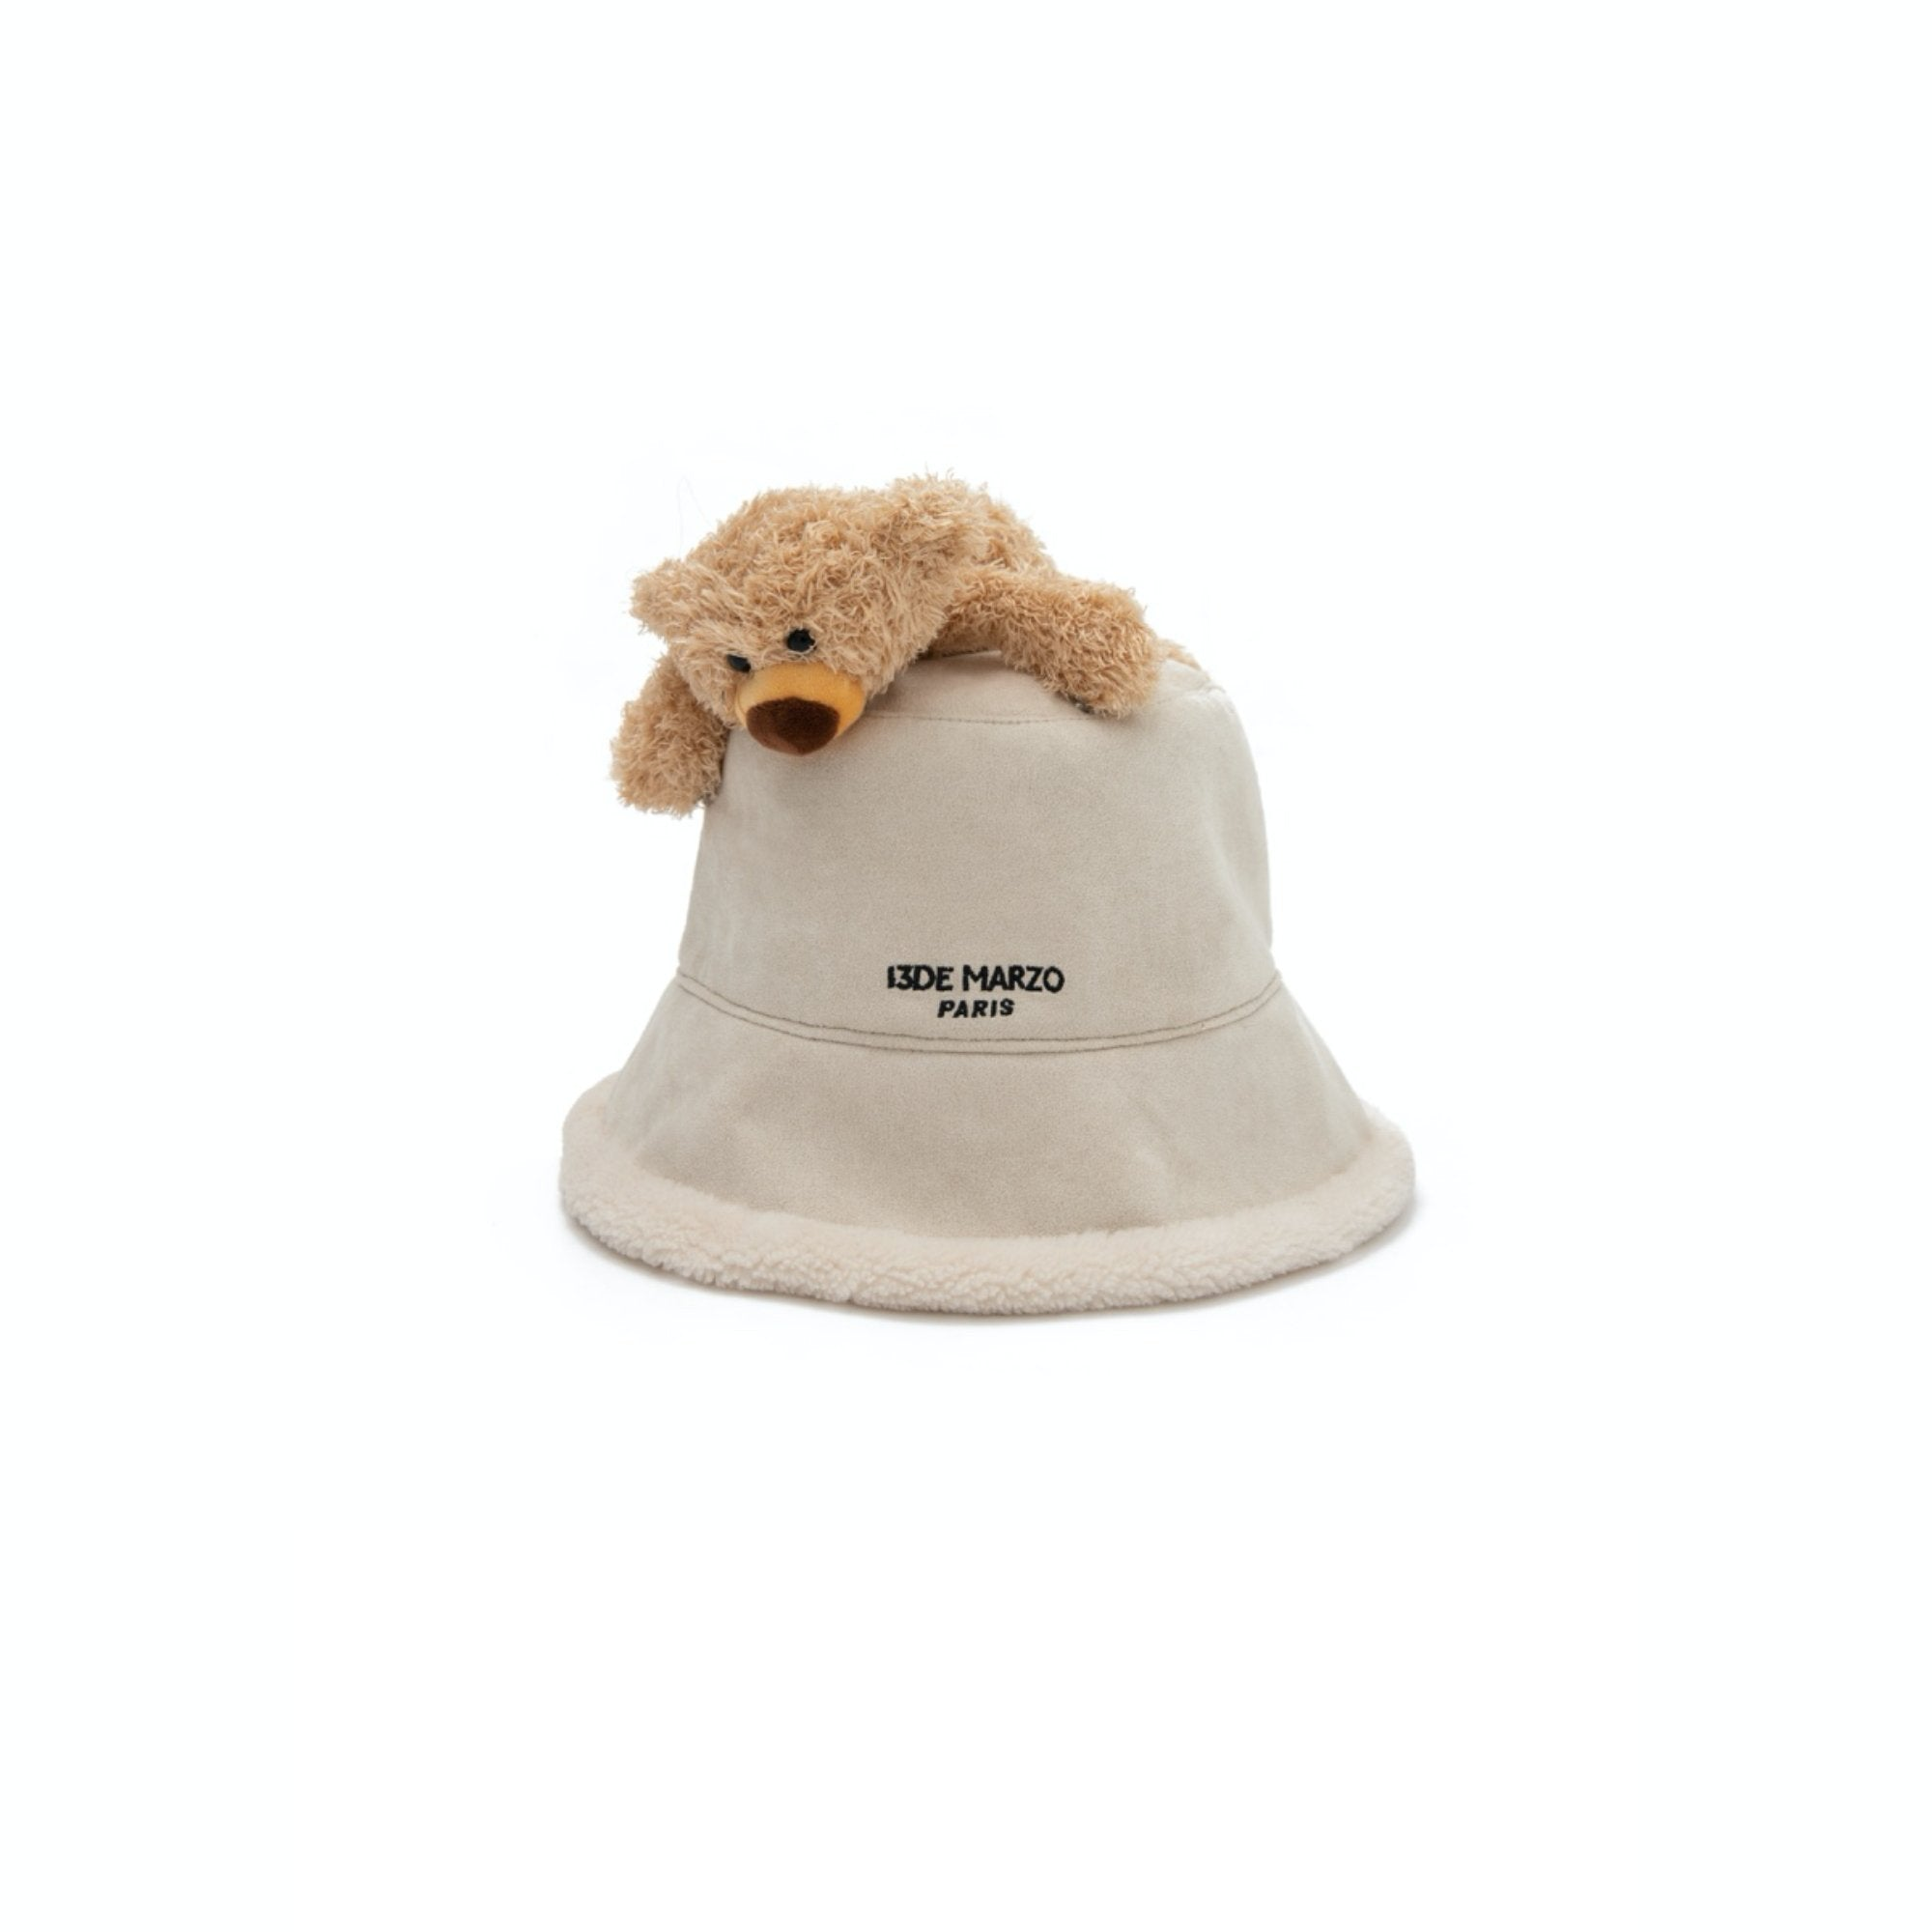 13 DE MARZO Lazy Teddy Bear Both-side Bucket Hat Pearled Ivory | MADA IN CHINA